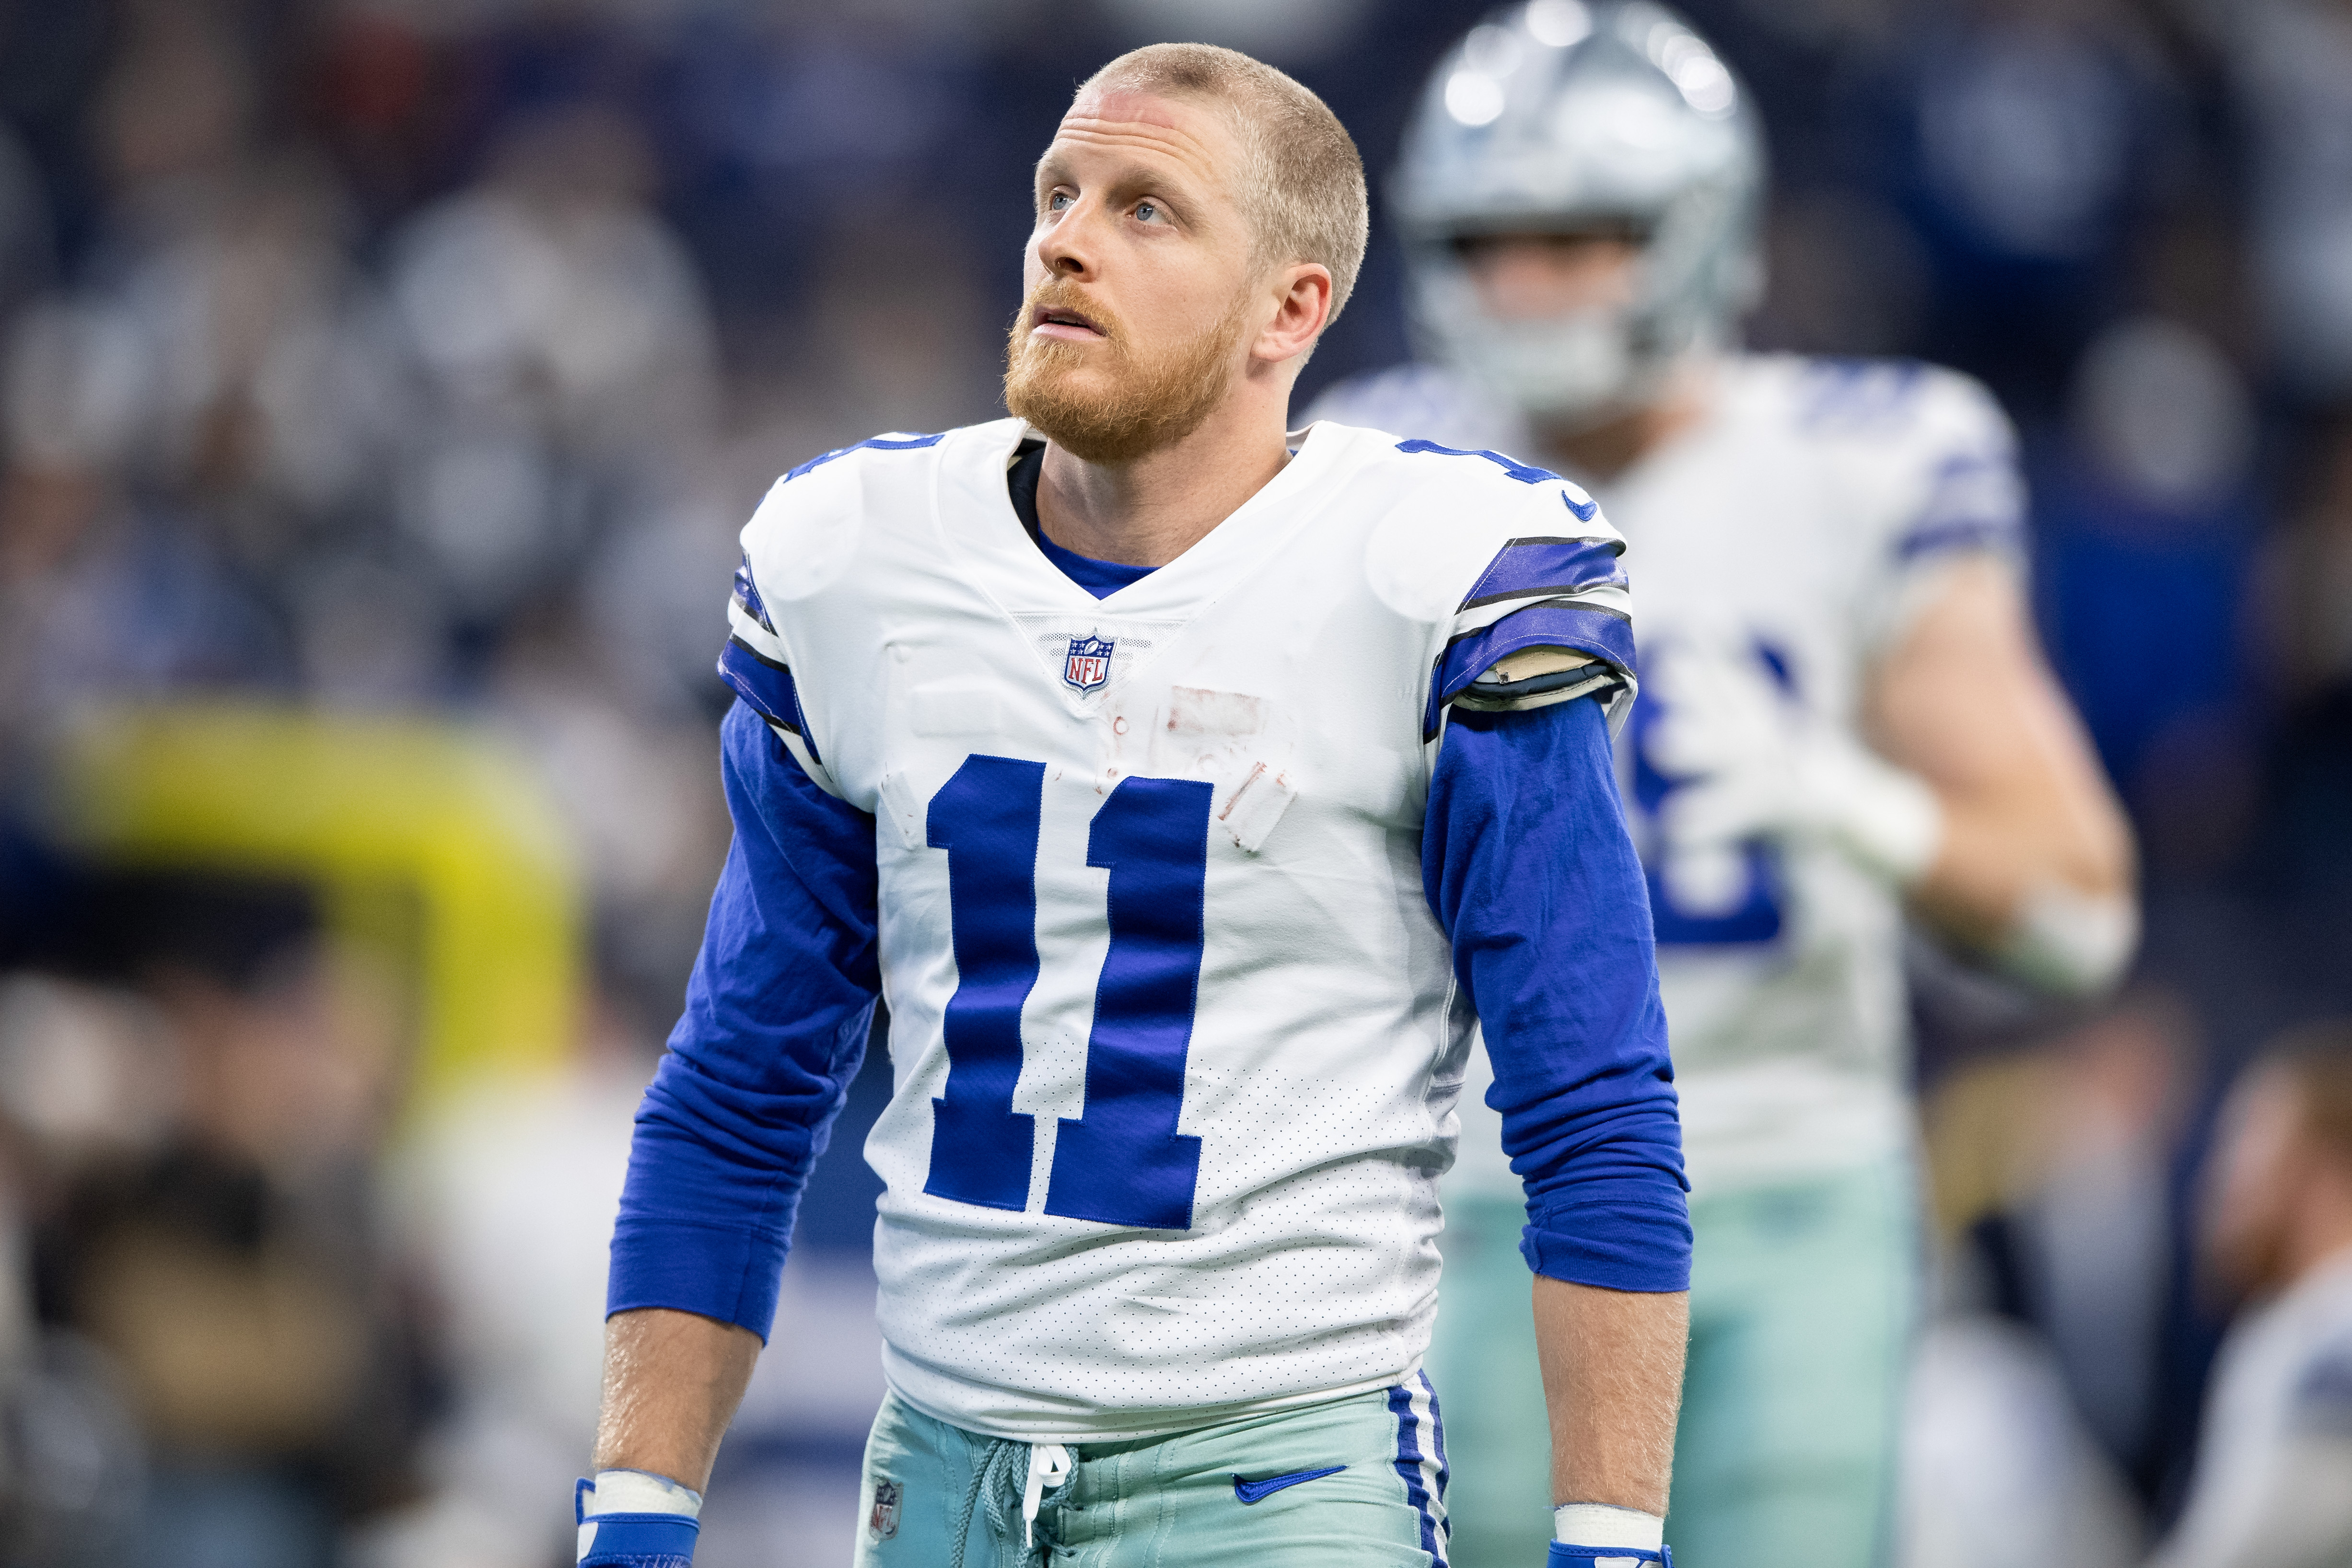 Nfl Cole Beasley Much Happier With Bills Than With Cowboys